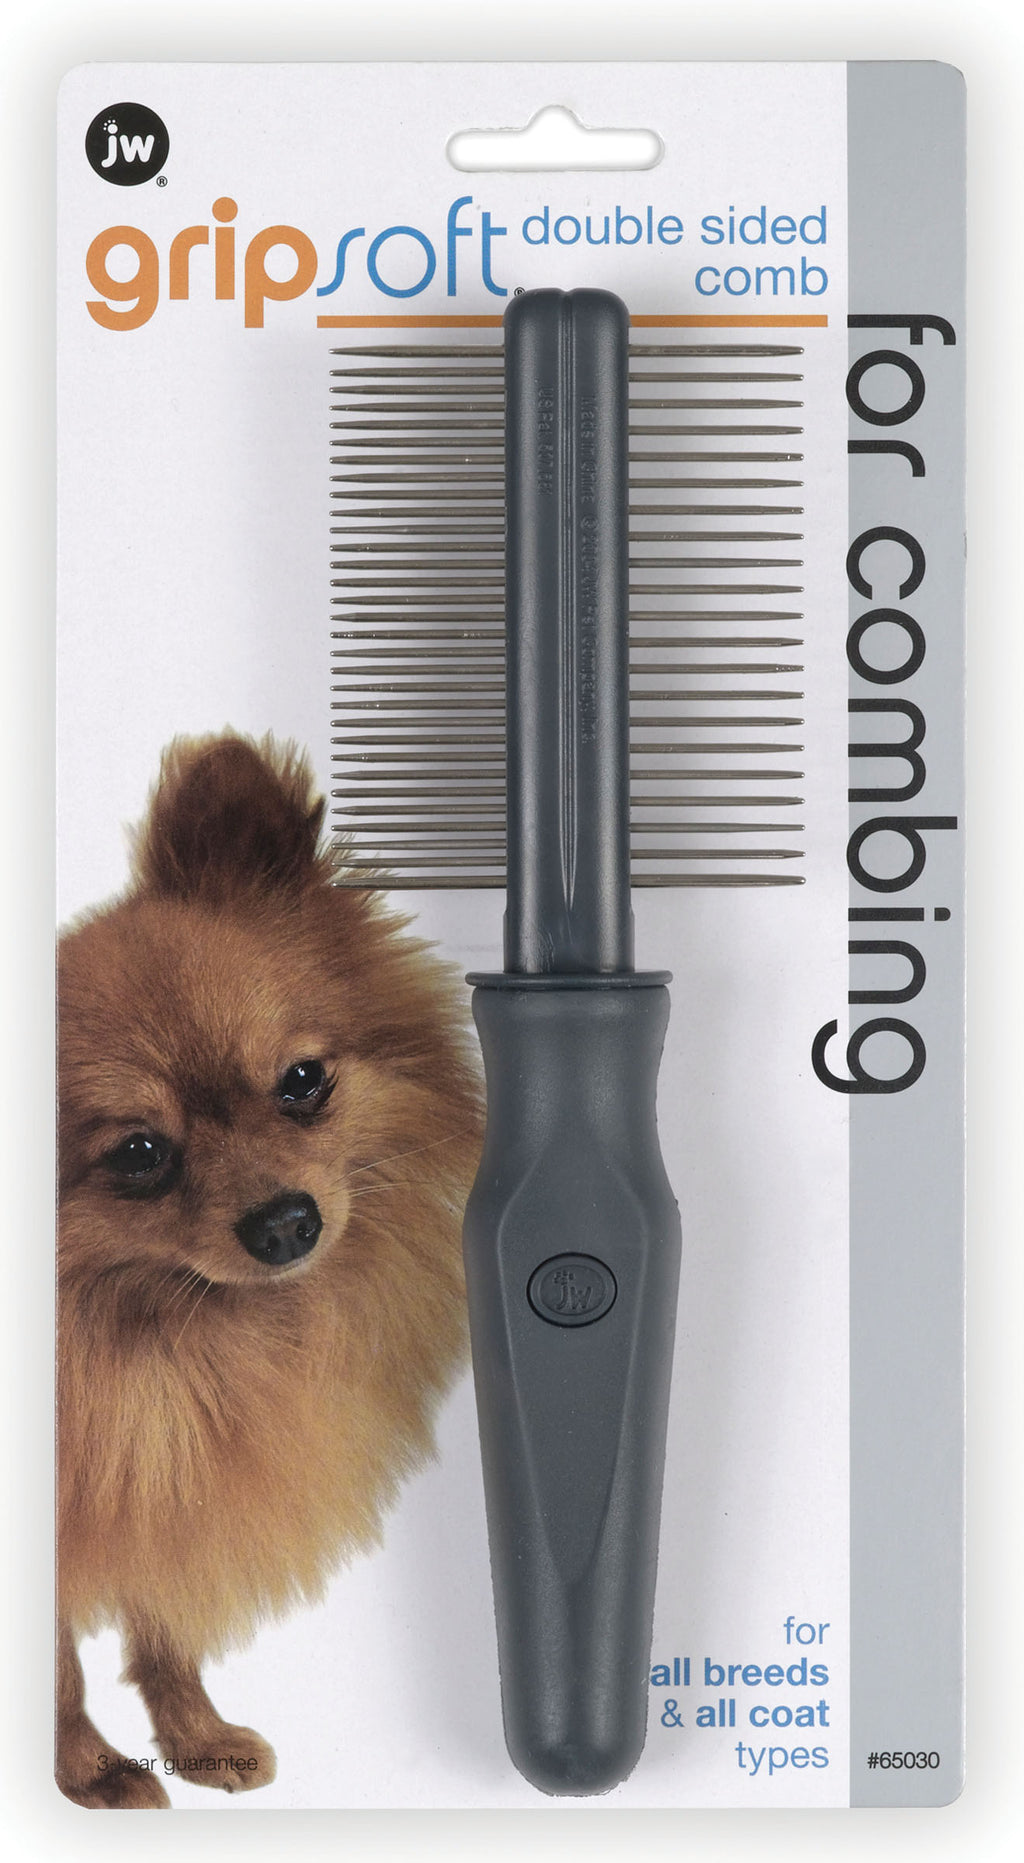 Jw Gripsoft Double Sided Comb